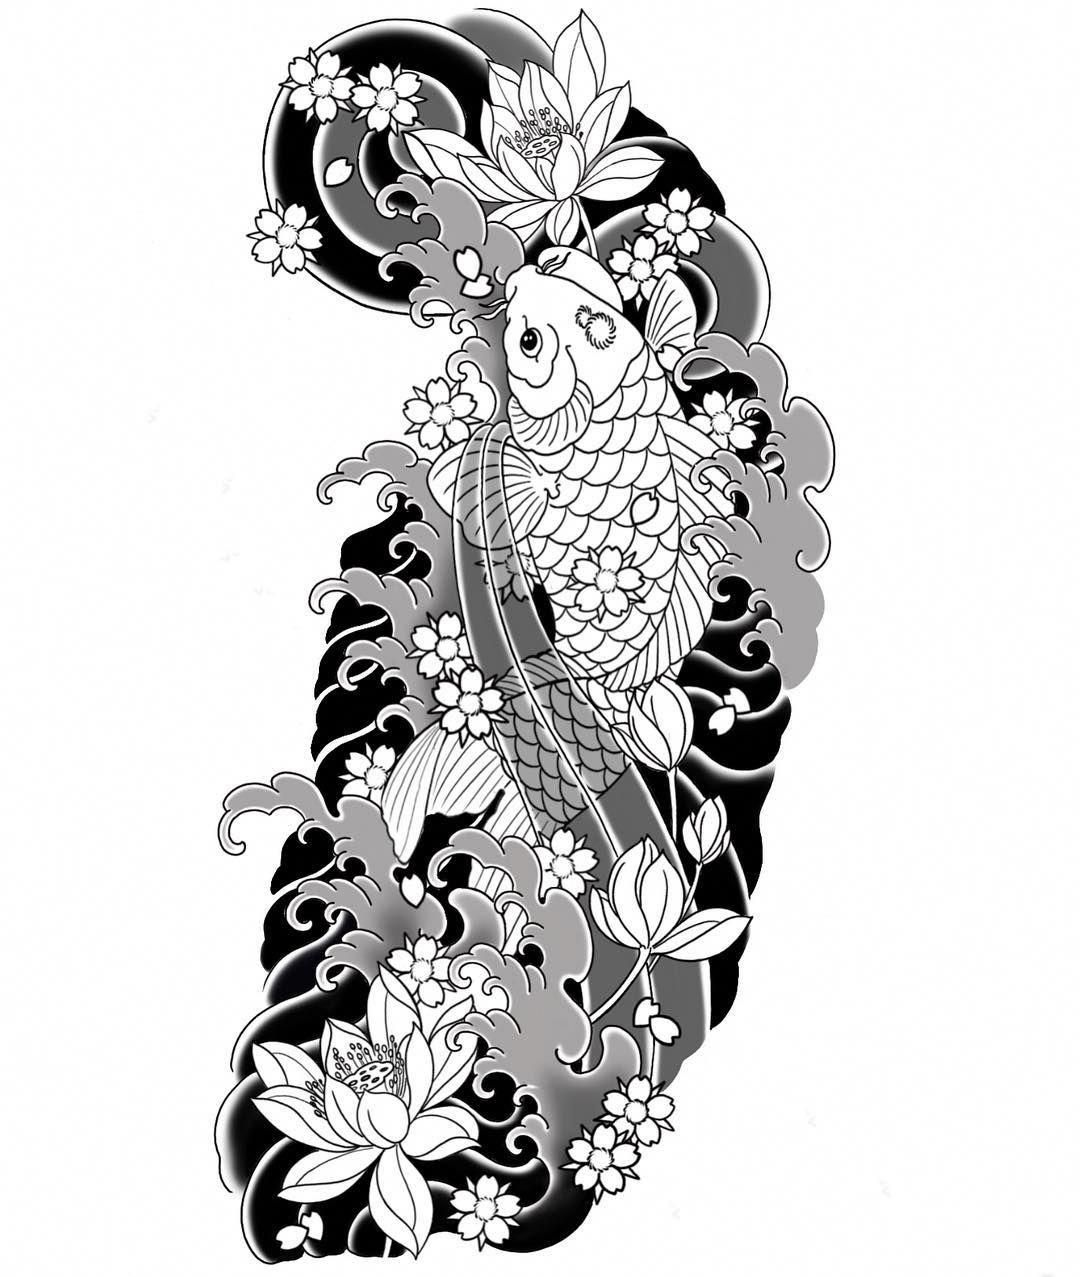 I Truly Appreciate The Hues Outlines And Fine Detail This Is An Amazing Layout If You Want Koi Tattoo Design Koi Tattoo Sleeve Half Sleeve Tattoos Designs